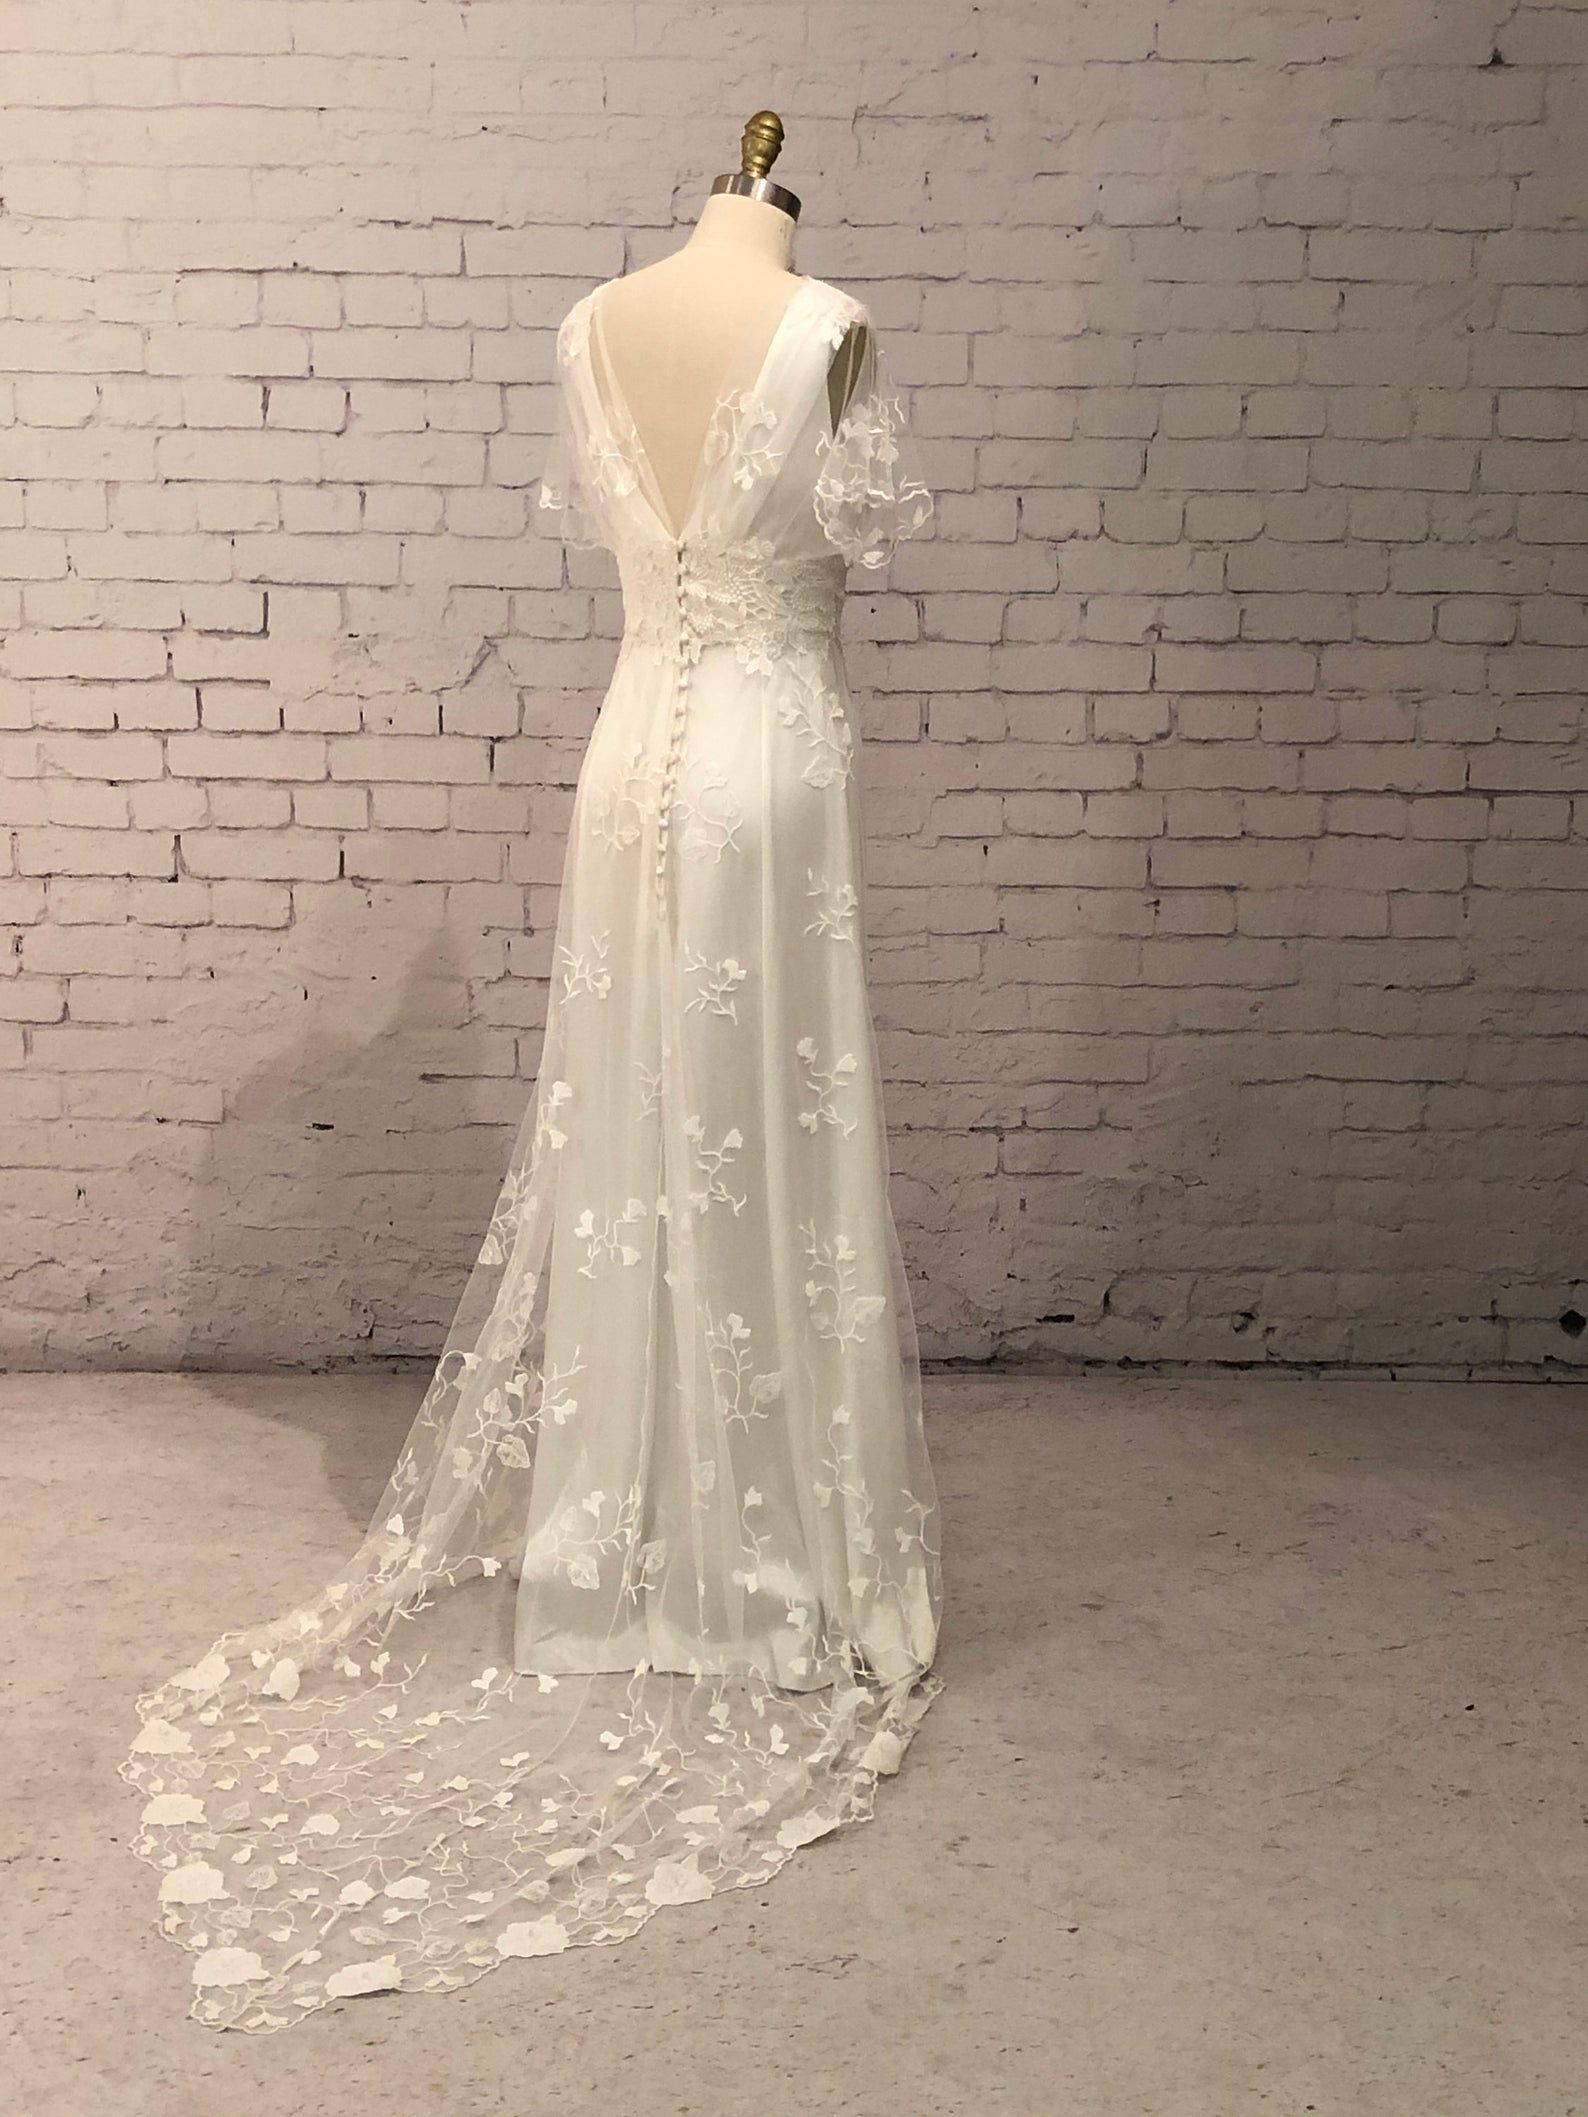 Lace Wedding Gown Wedding Dress With Sleeves Buttons Up Back And Train Vintage Style Boho Classic And Simple Helene Gown Antique Lace Wedding Dress Backyard Wedding Dresses Wedding Gowns Lace [ 2117 x 1588 Pixel ]